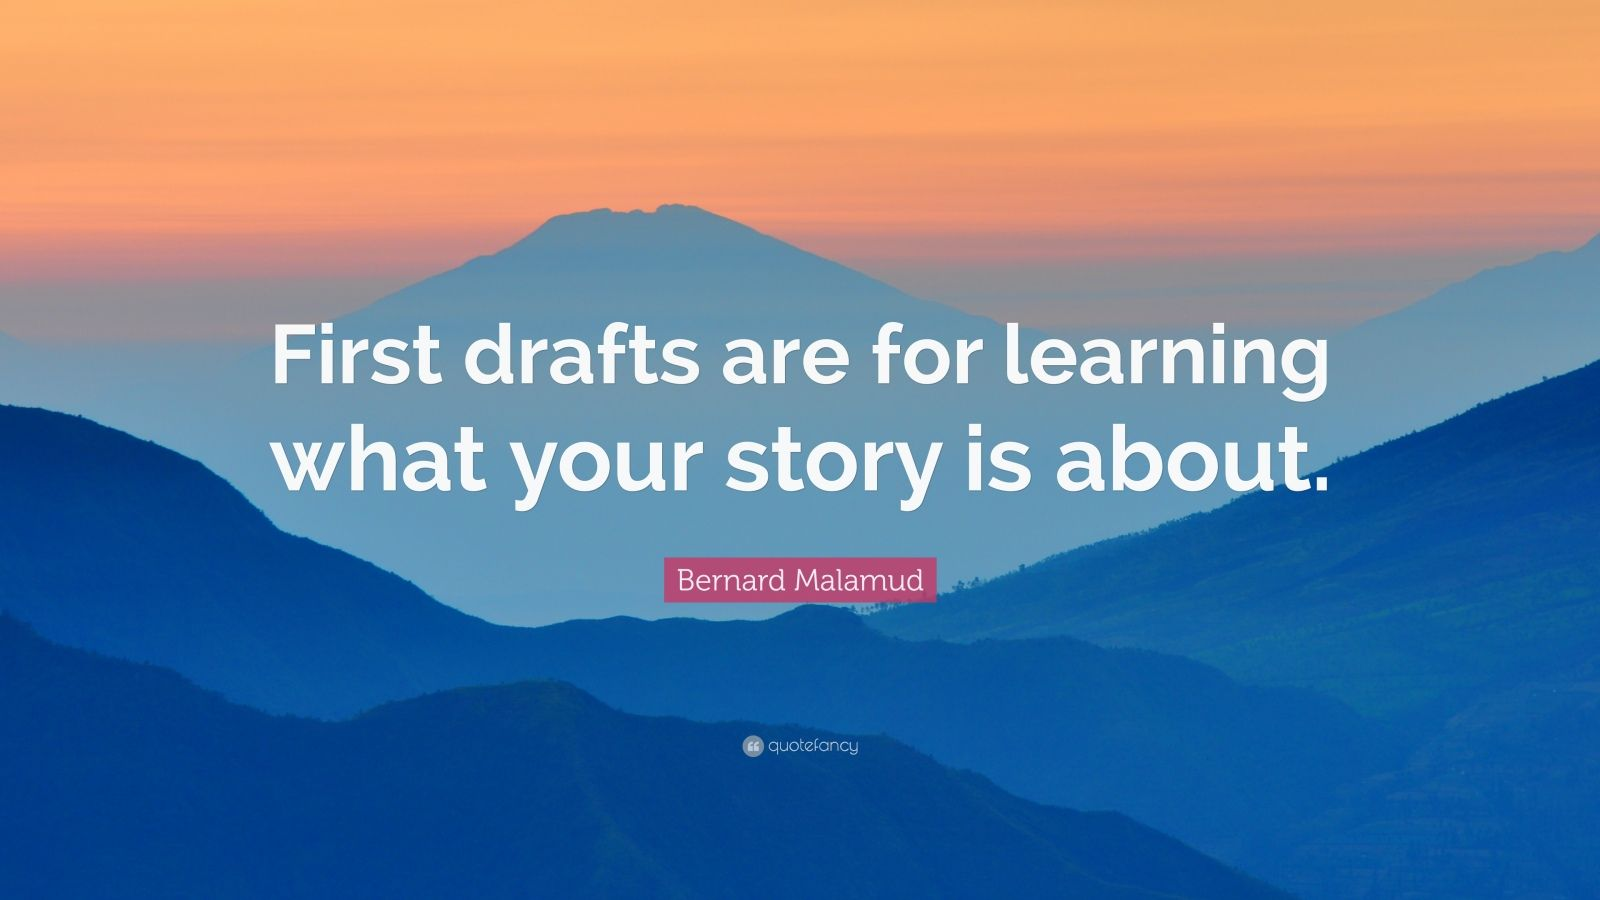 bernard malamud a contradiction between personal Free bernard malamud papers while just about all people are very open about their thoughts and personal feelings, bernard is very secretive about many of his.